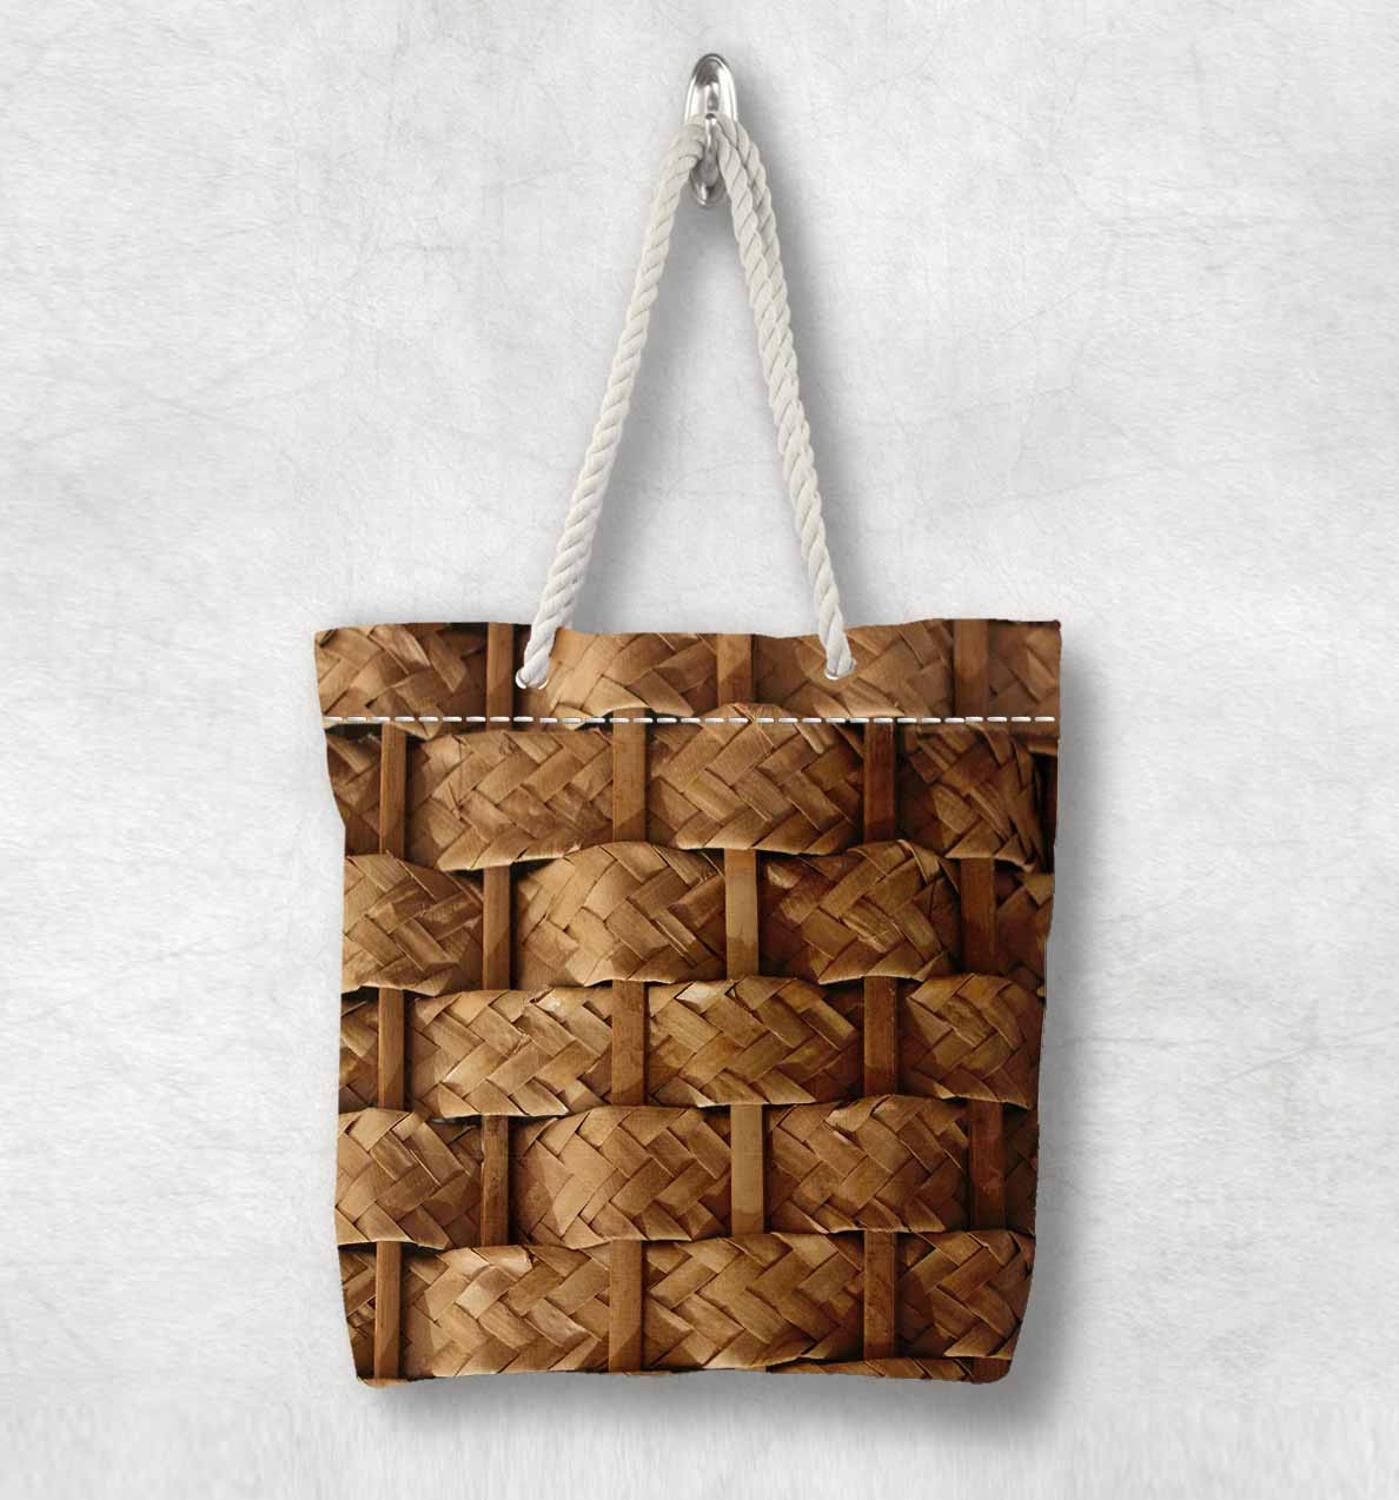 Else Brown Wicker Bamboo Floral New Fashion White Rope Handle Canvas Bag Cotton Canvas Zippered Tote Bag Shoulder Bag